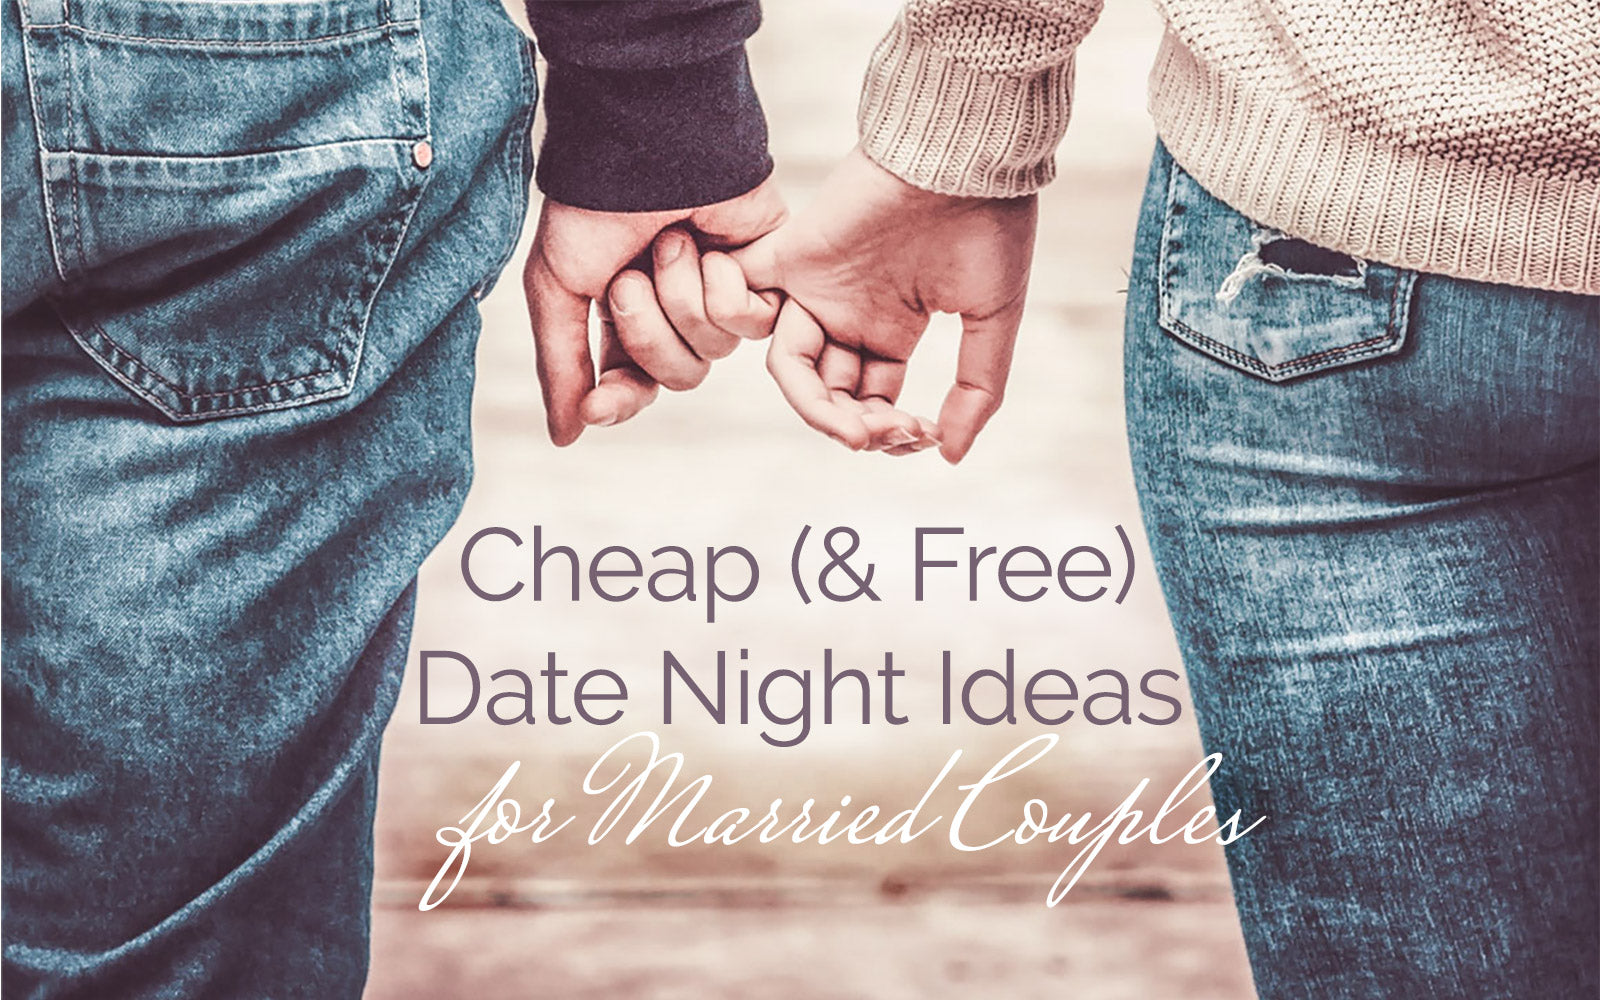 48 Cheap (and free) date night ideas for married couples